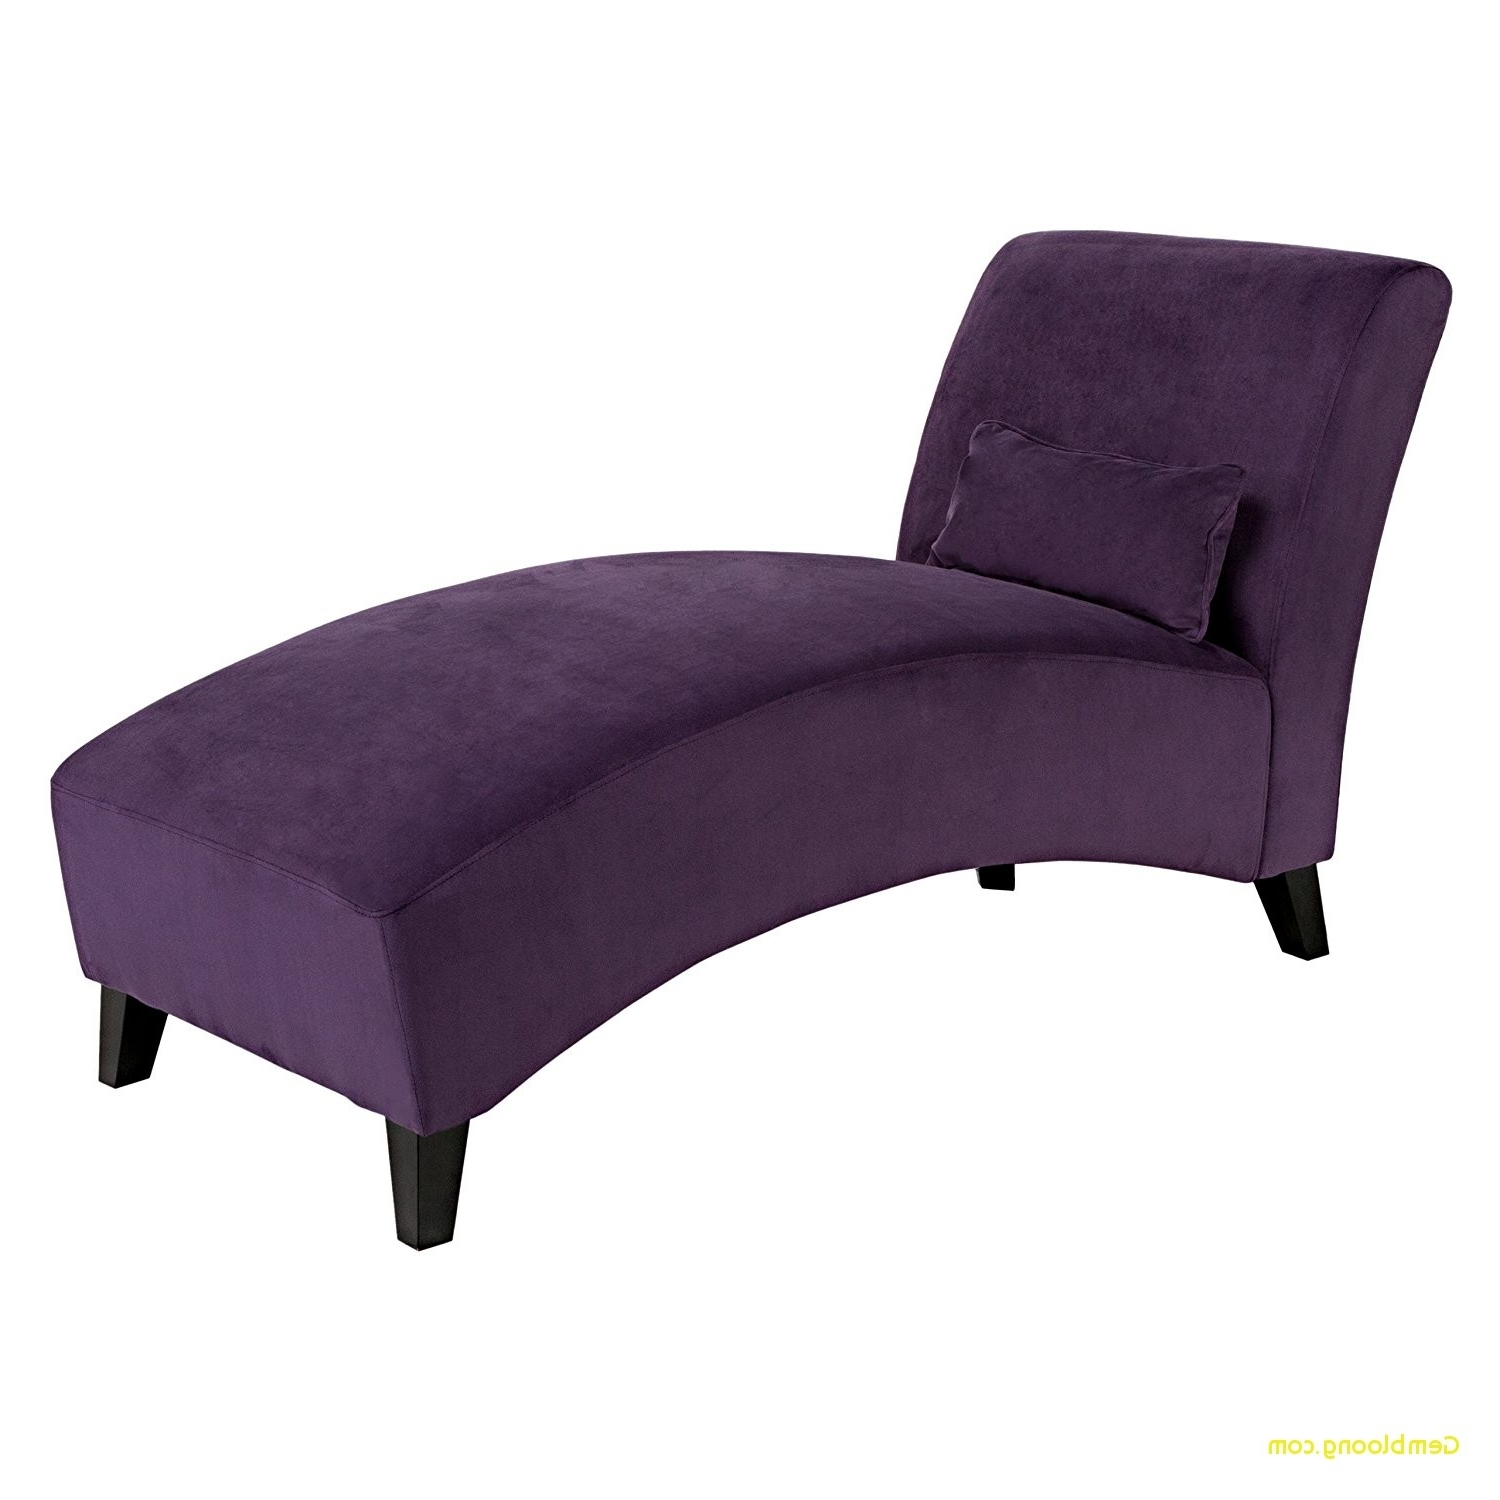 Latest Children's Chaise Lounges With Regard To Toddler Chaise Lounge Best Of Chair Children S Little Chairs (View 13 of 15)